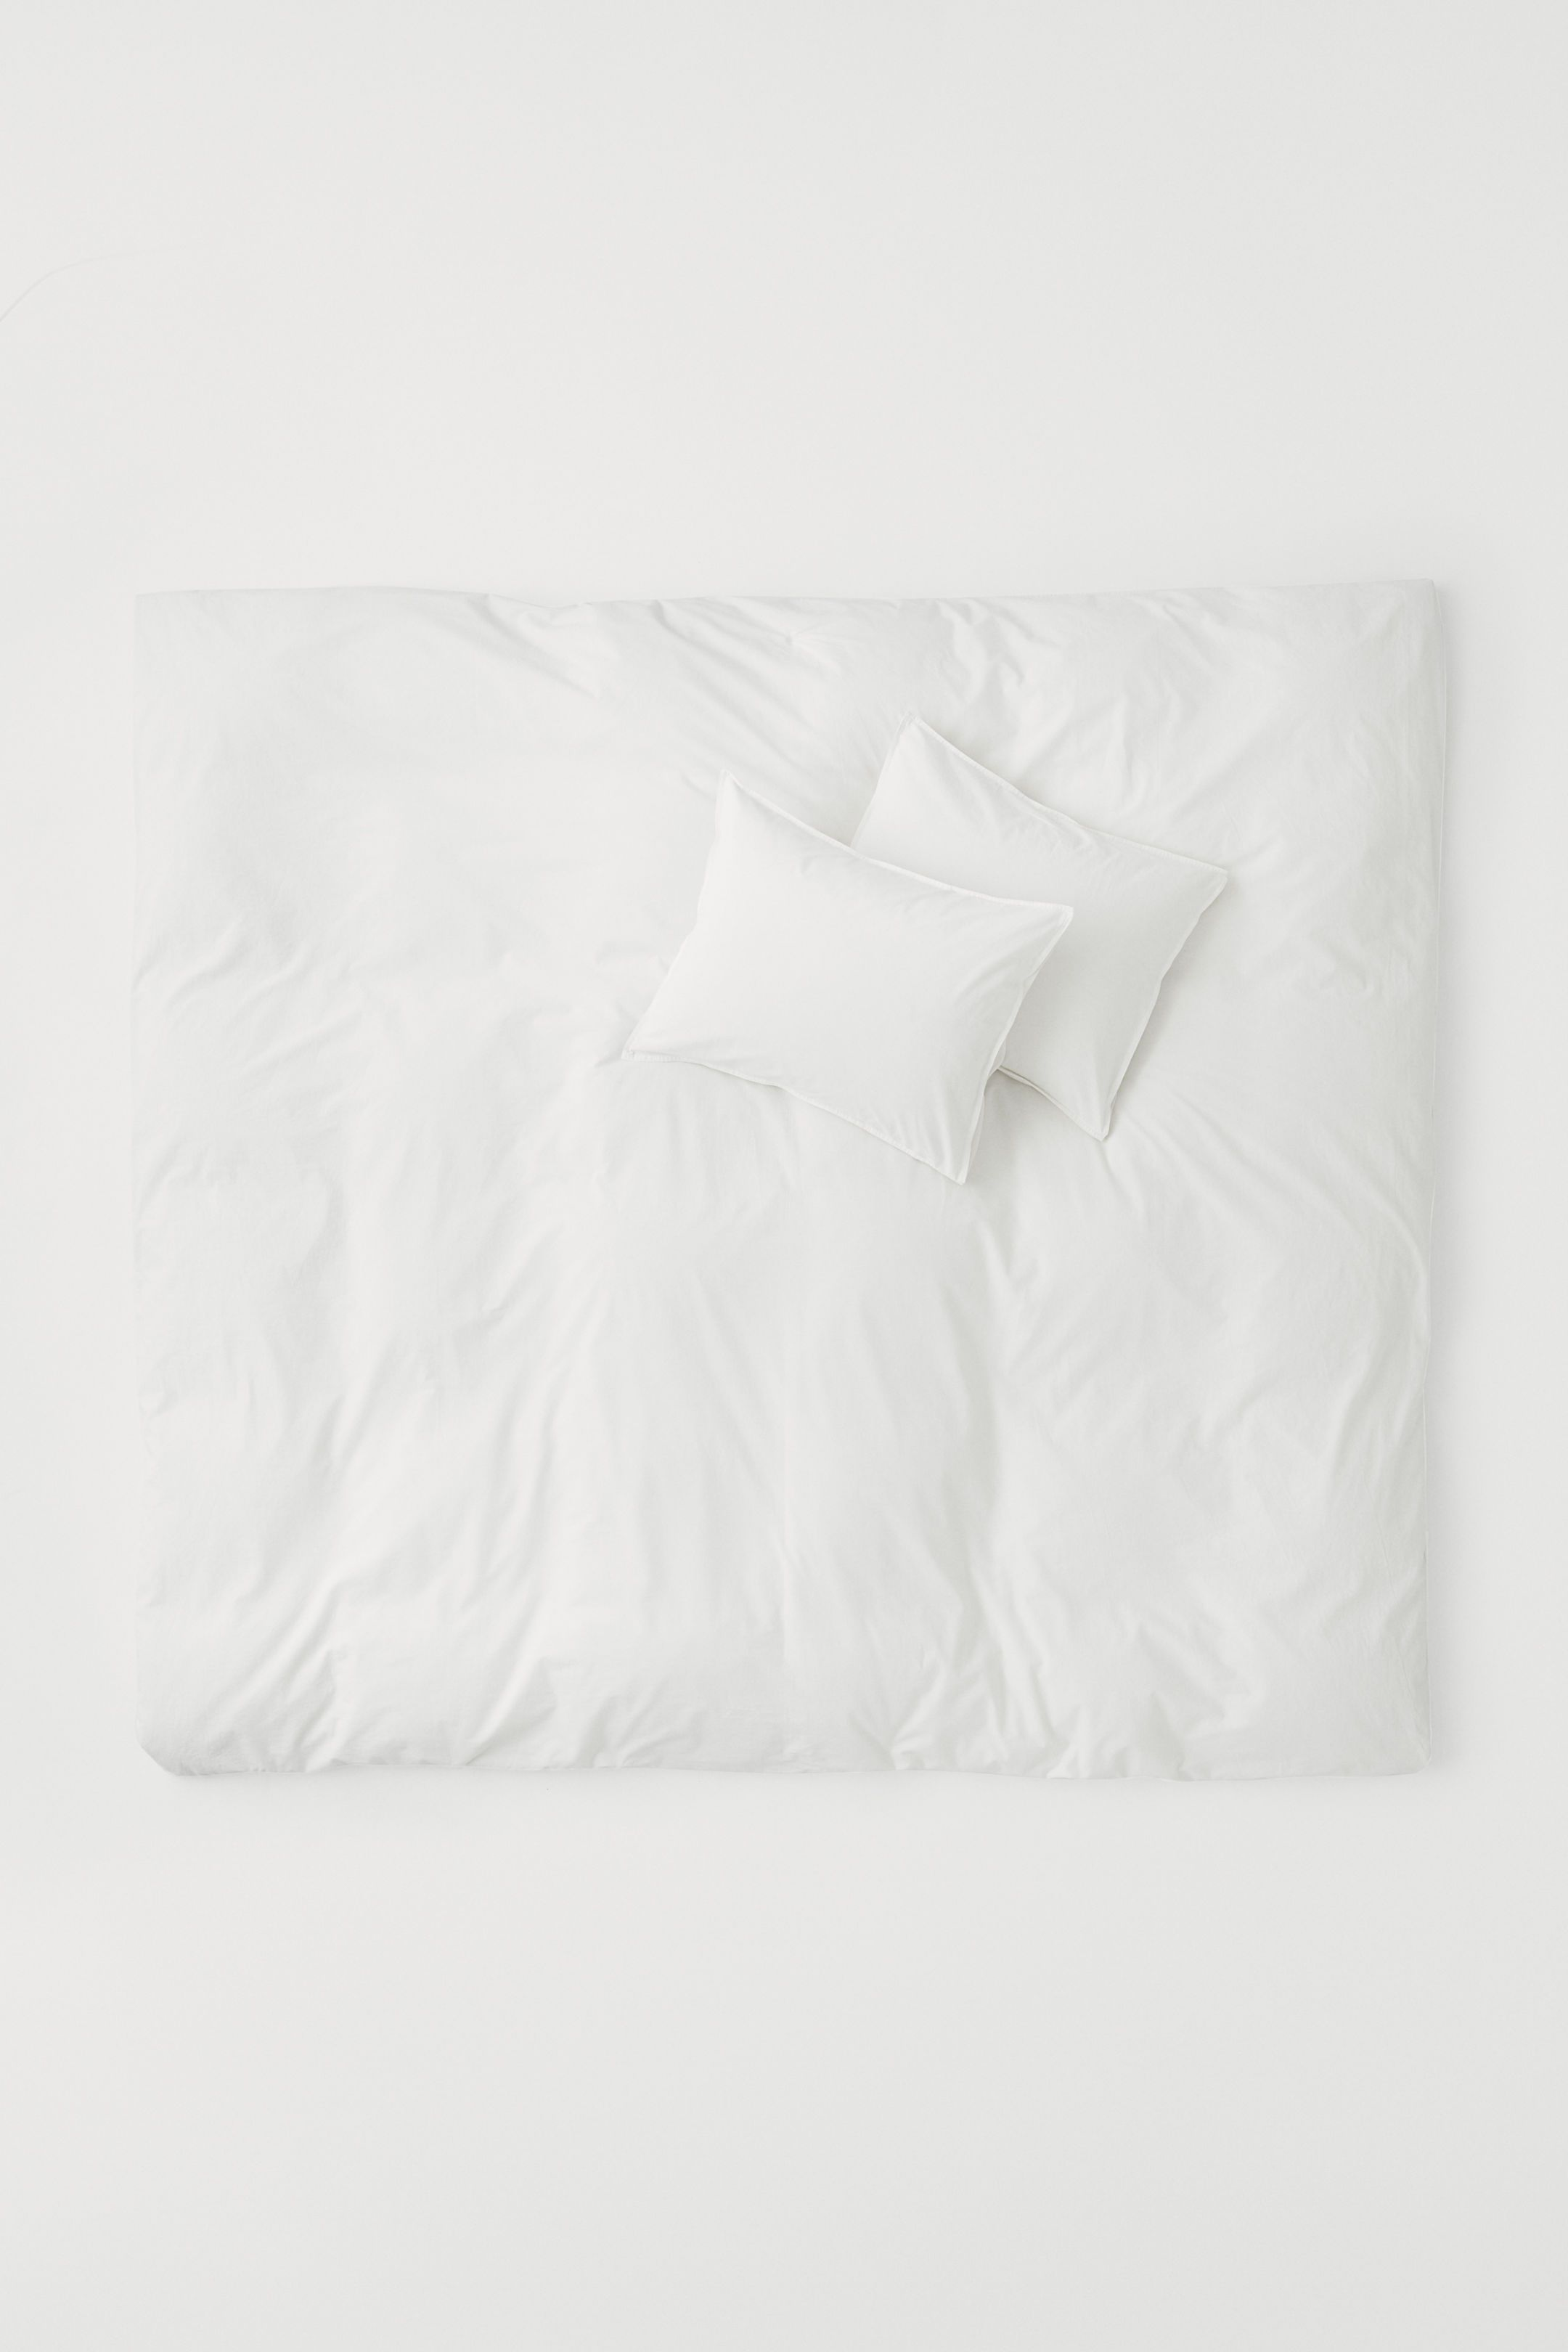 H&M Home Cotton Poplin Duvet Cover Set